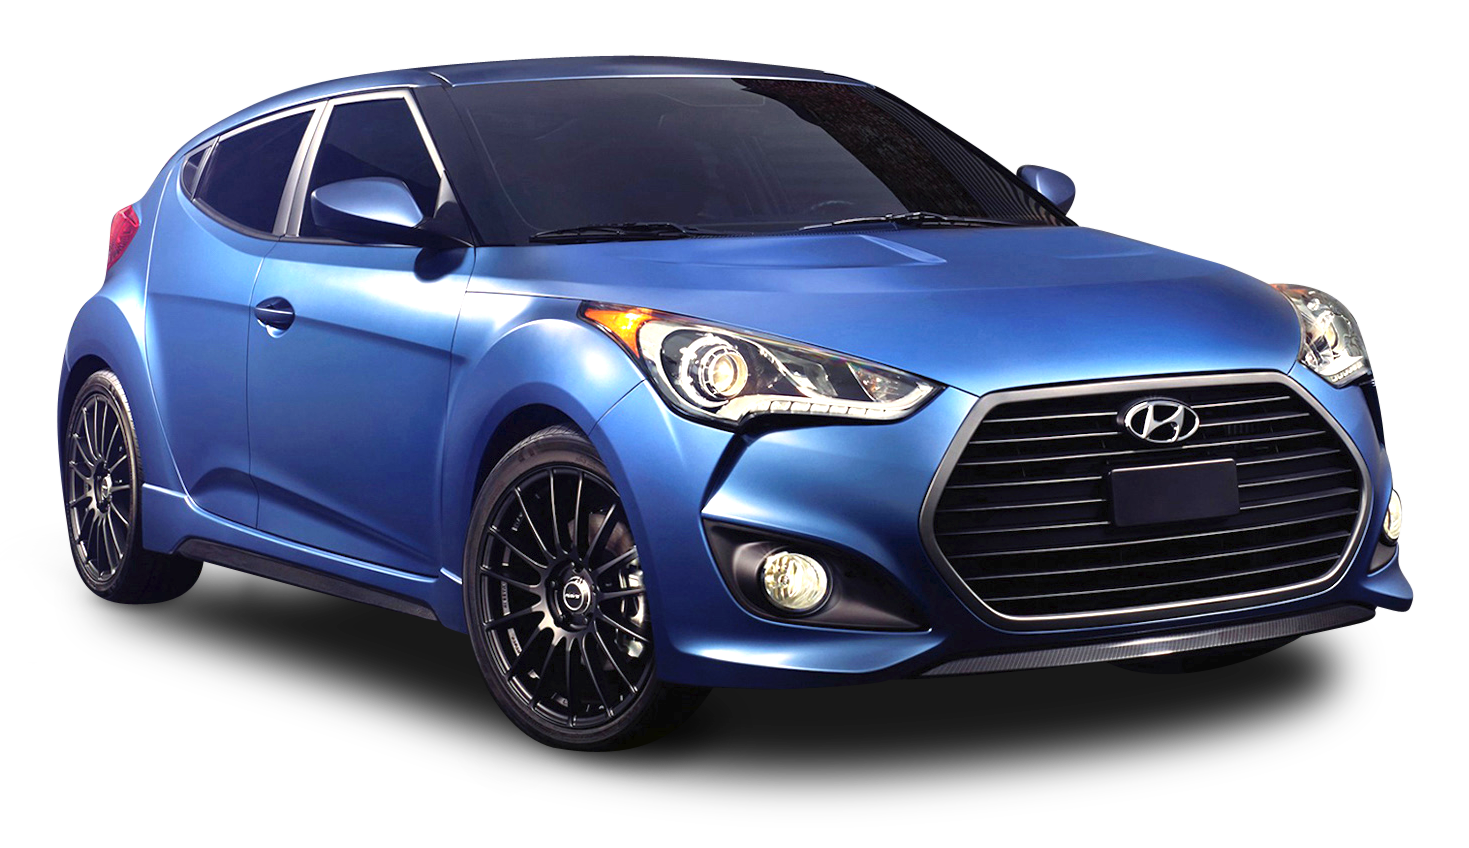 Blue Hyundai Veloster Rally Car PNG Image.